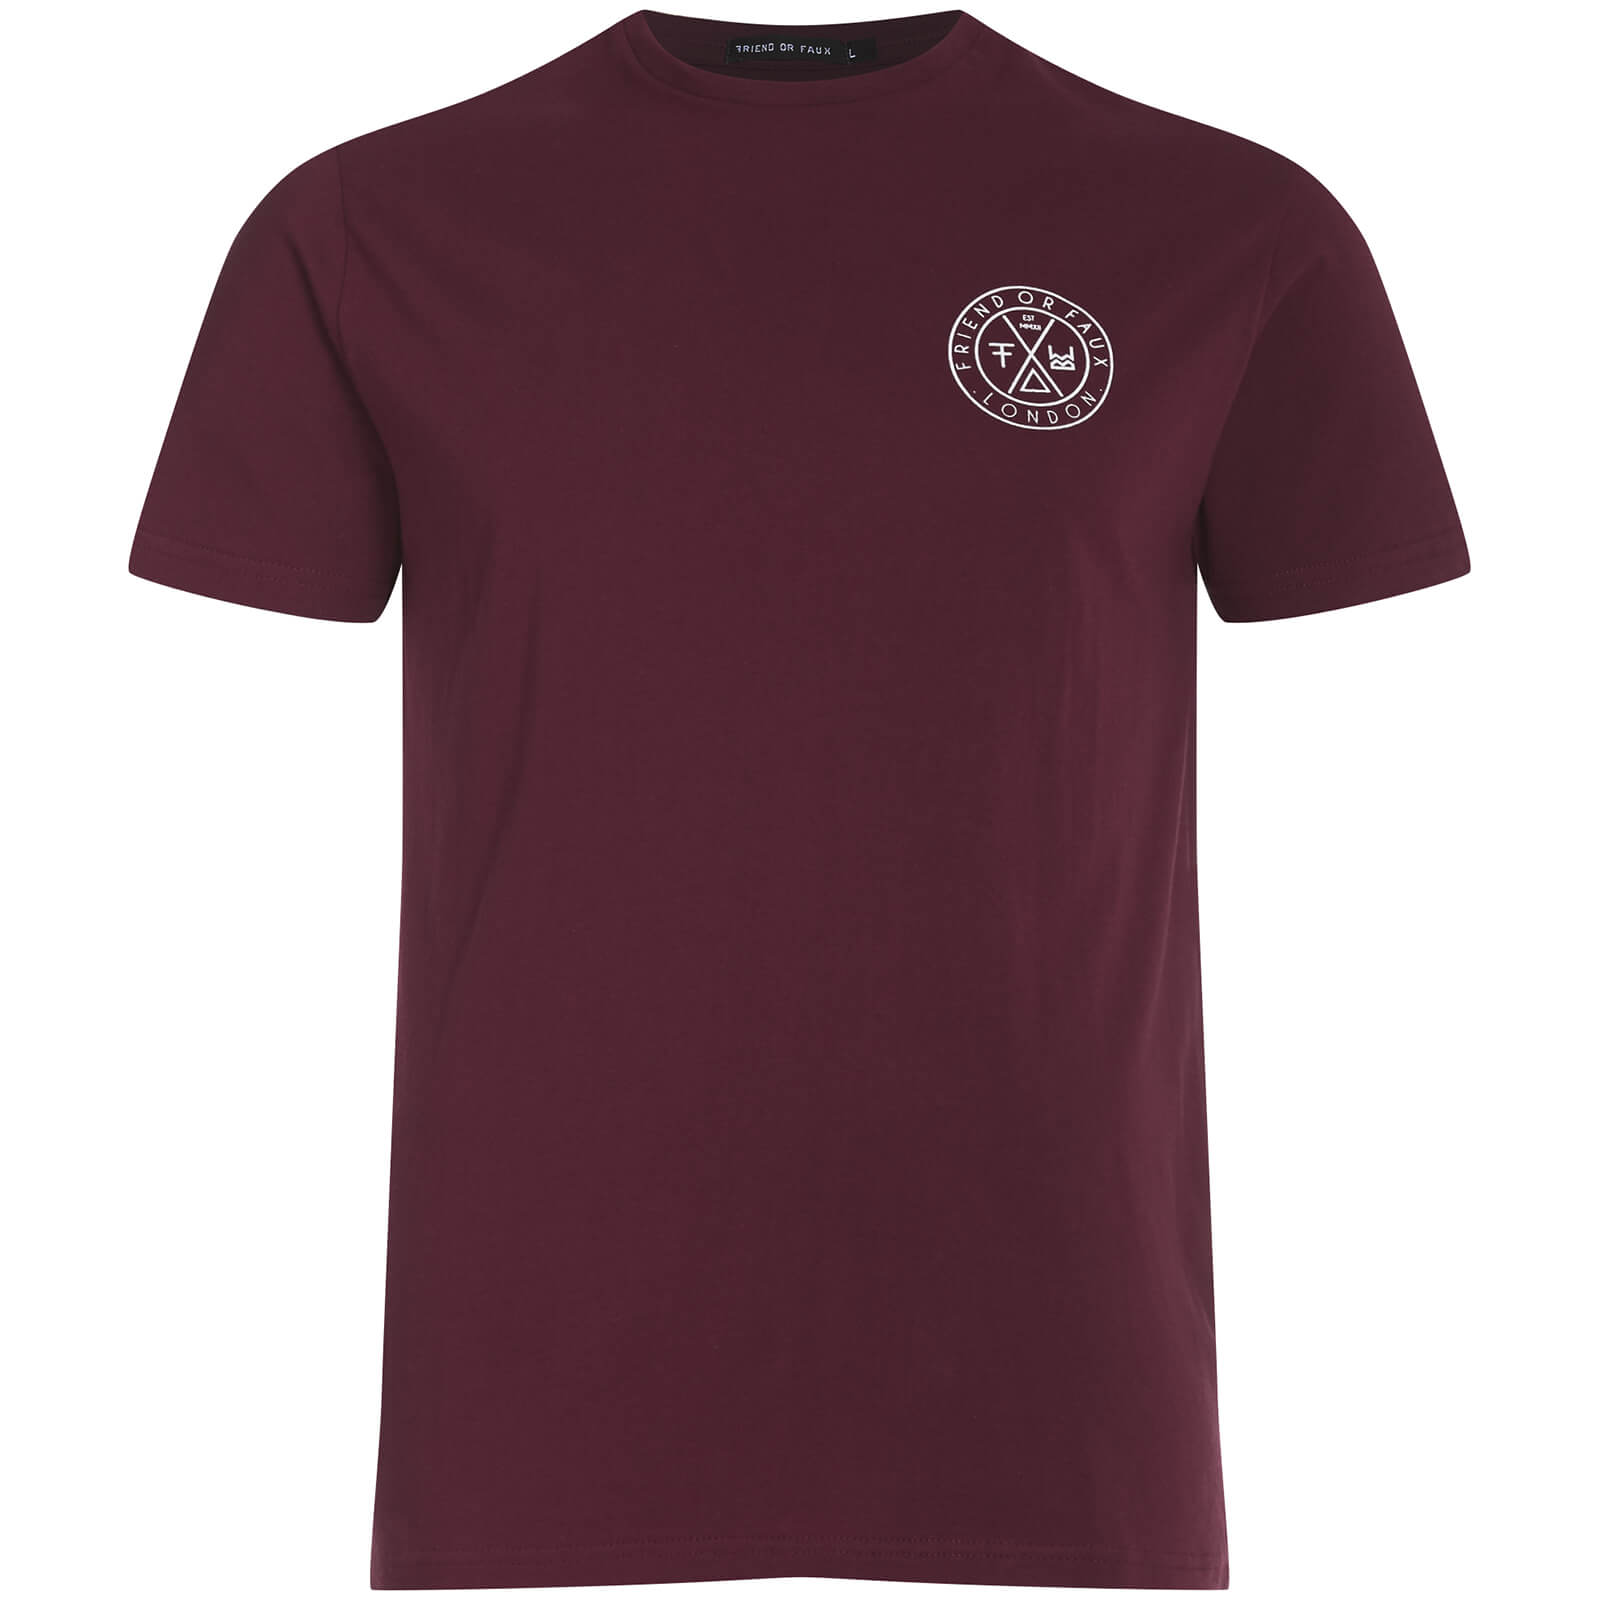 T-Shirt Homme Tremer Friend or Faux -Bordeaux